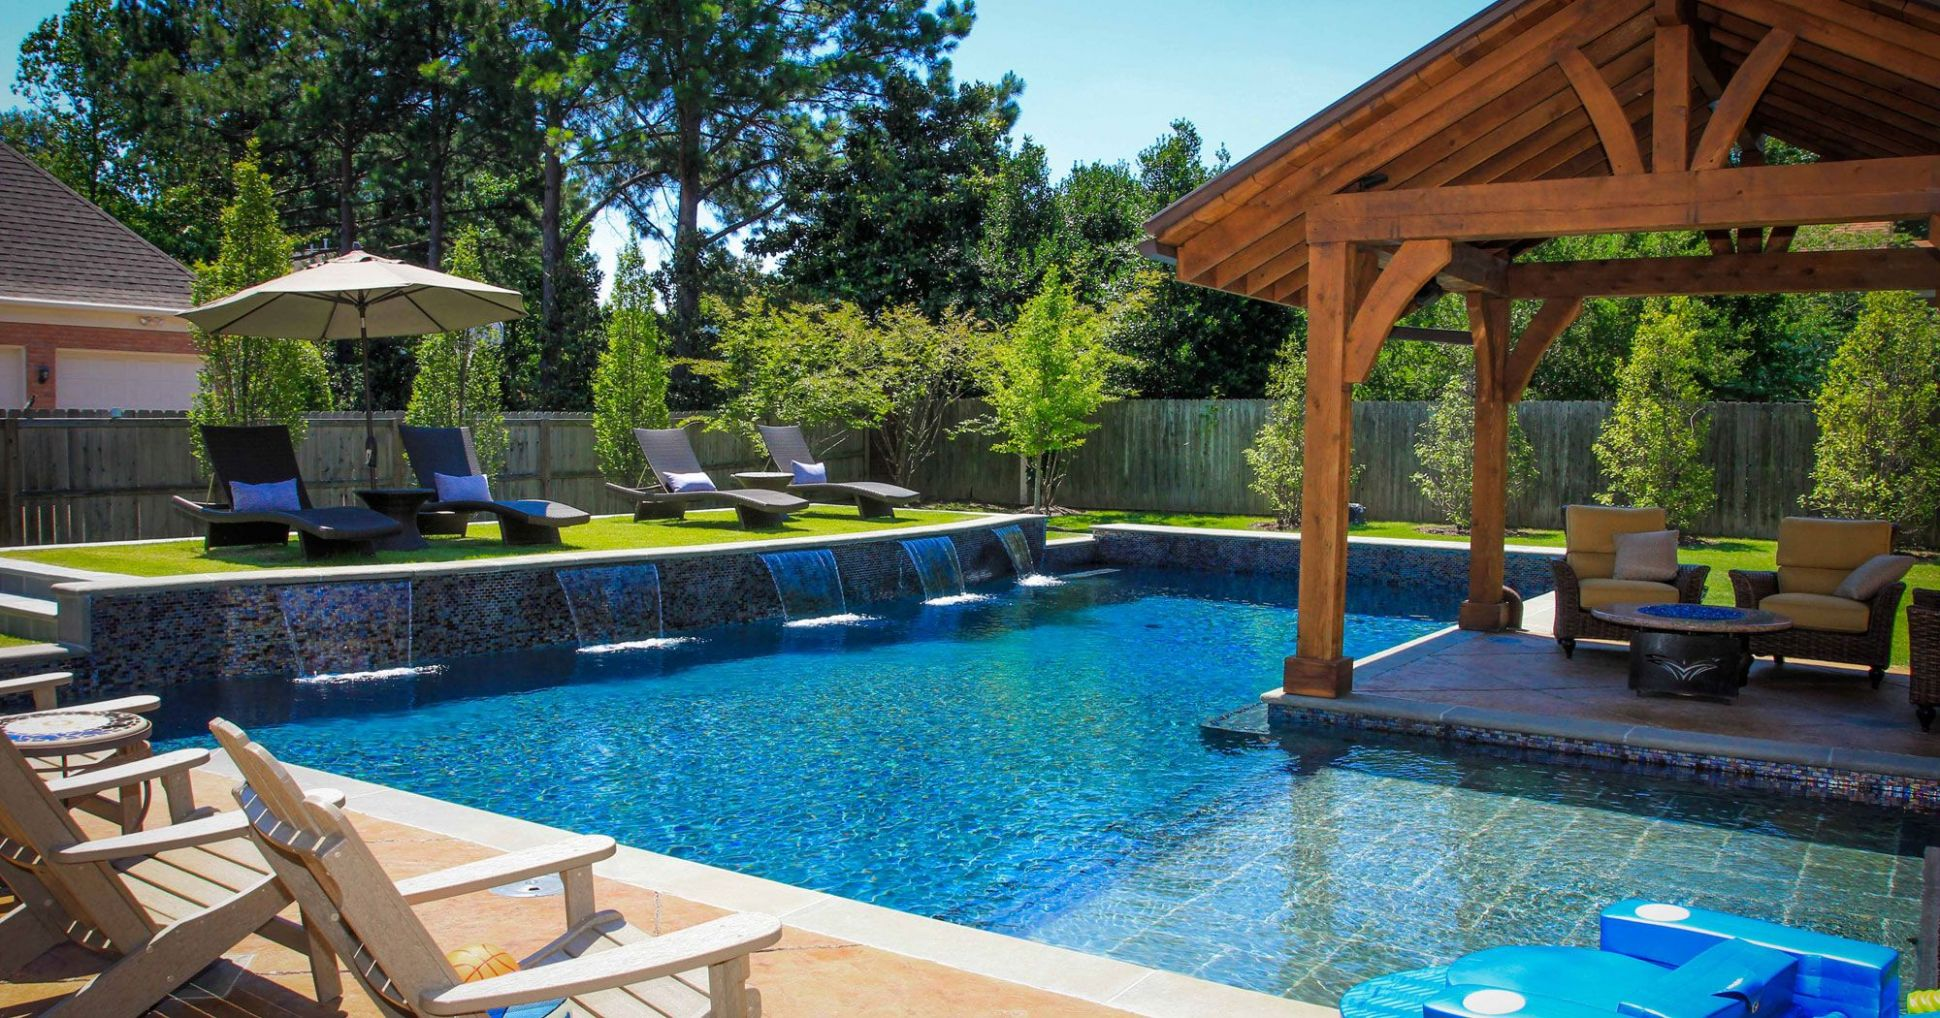 8 Backyard Pool Ideas for the Wealthy Homeowner | Backyard pool ..